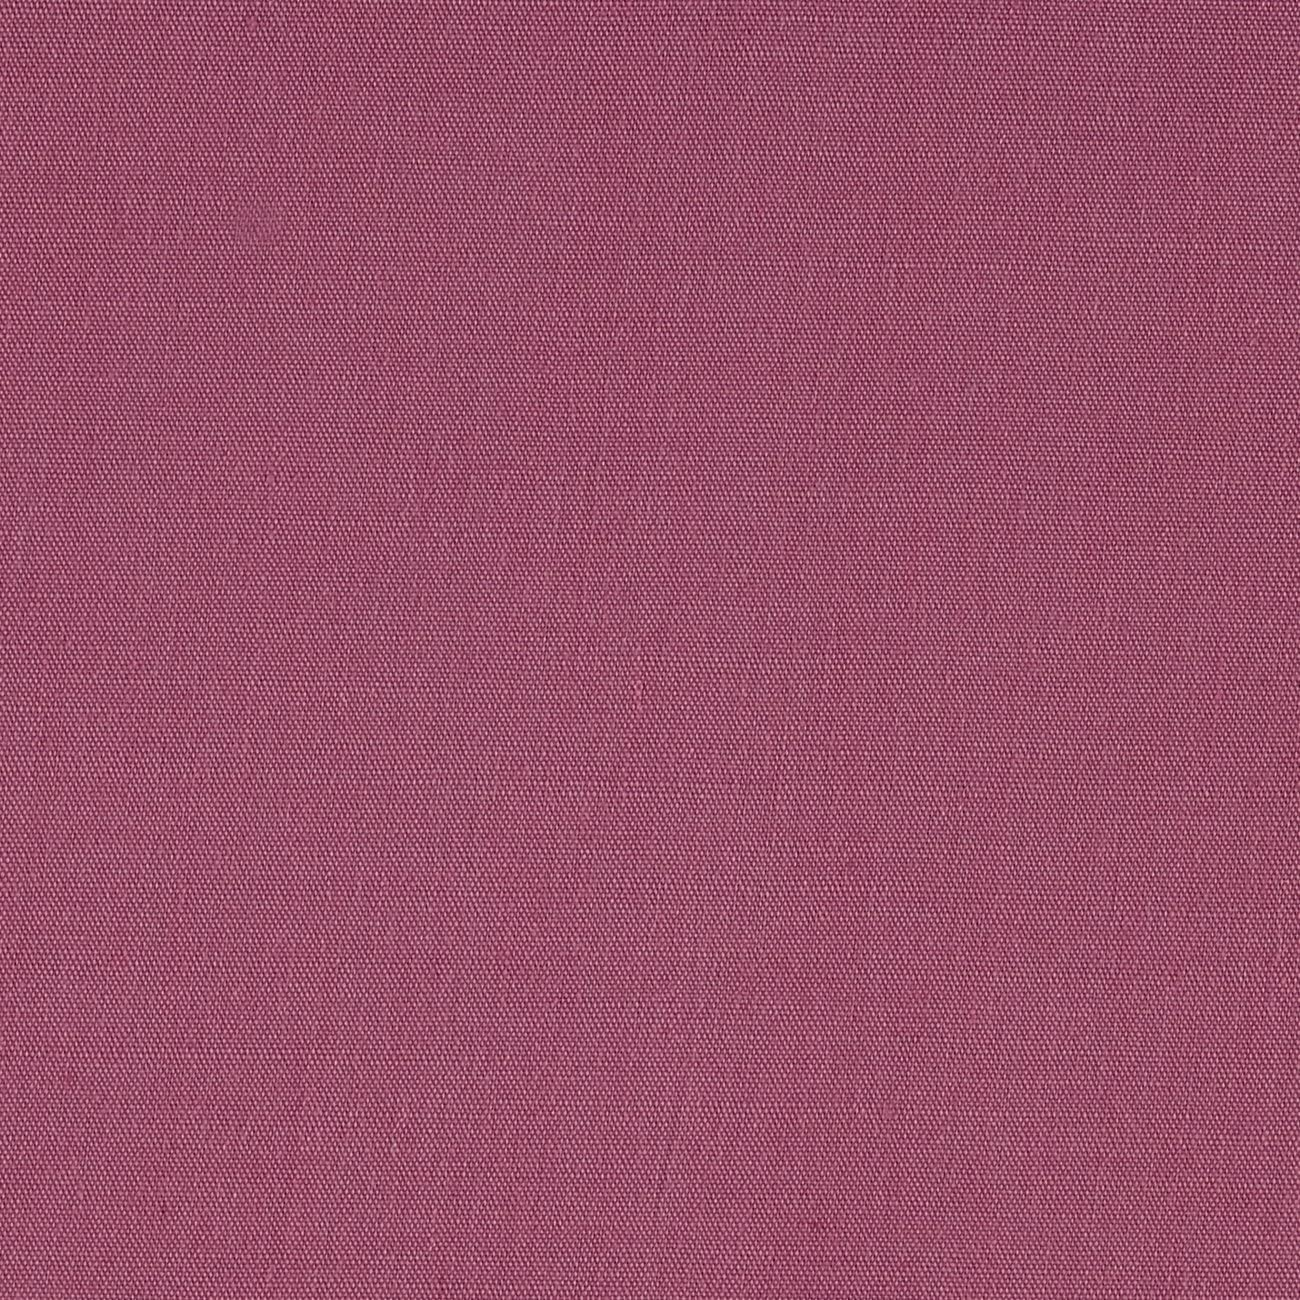 Ben Textiles 60in Poly Cotton Broadcloth Candy Pink Fabric By The Yard